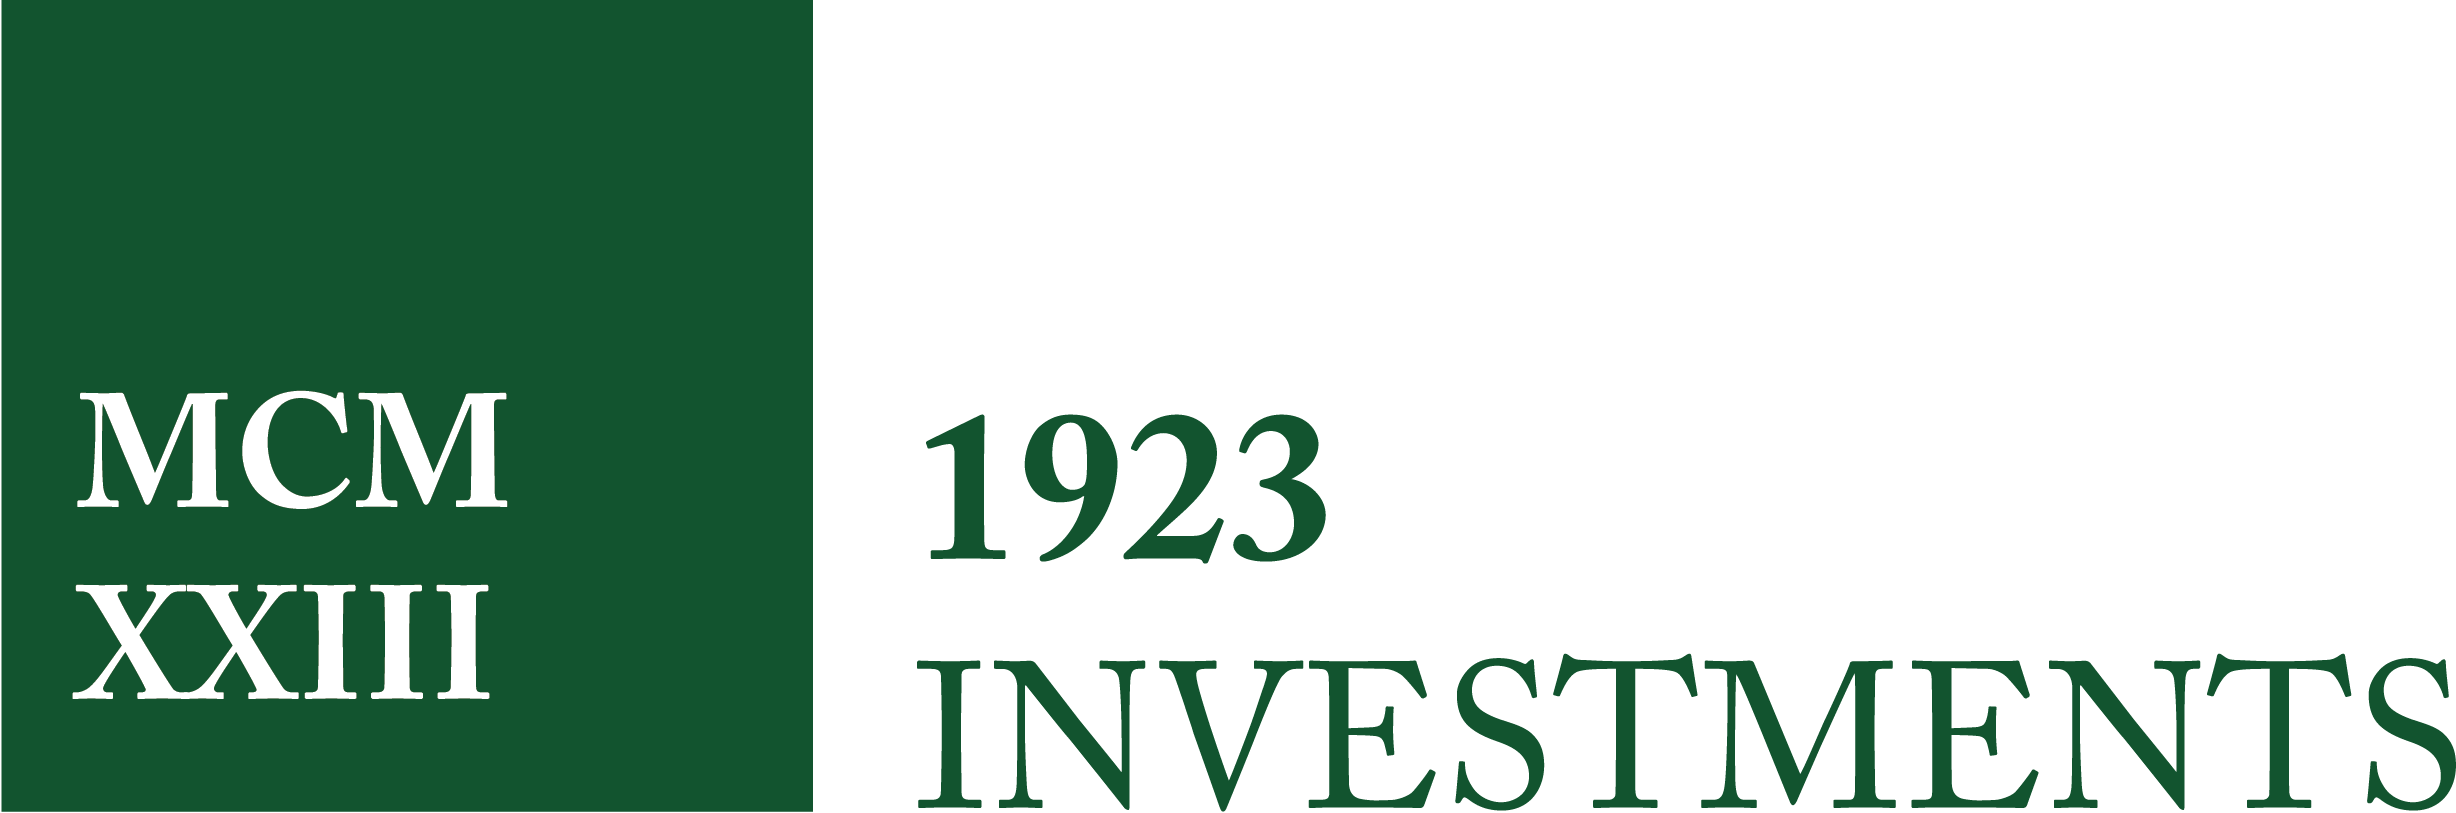 Company Announcements | 1923 Investments plc